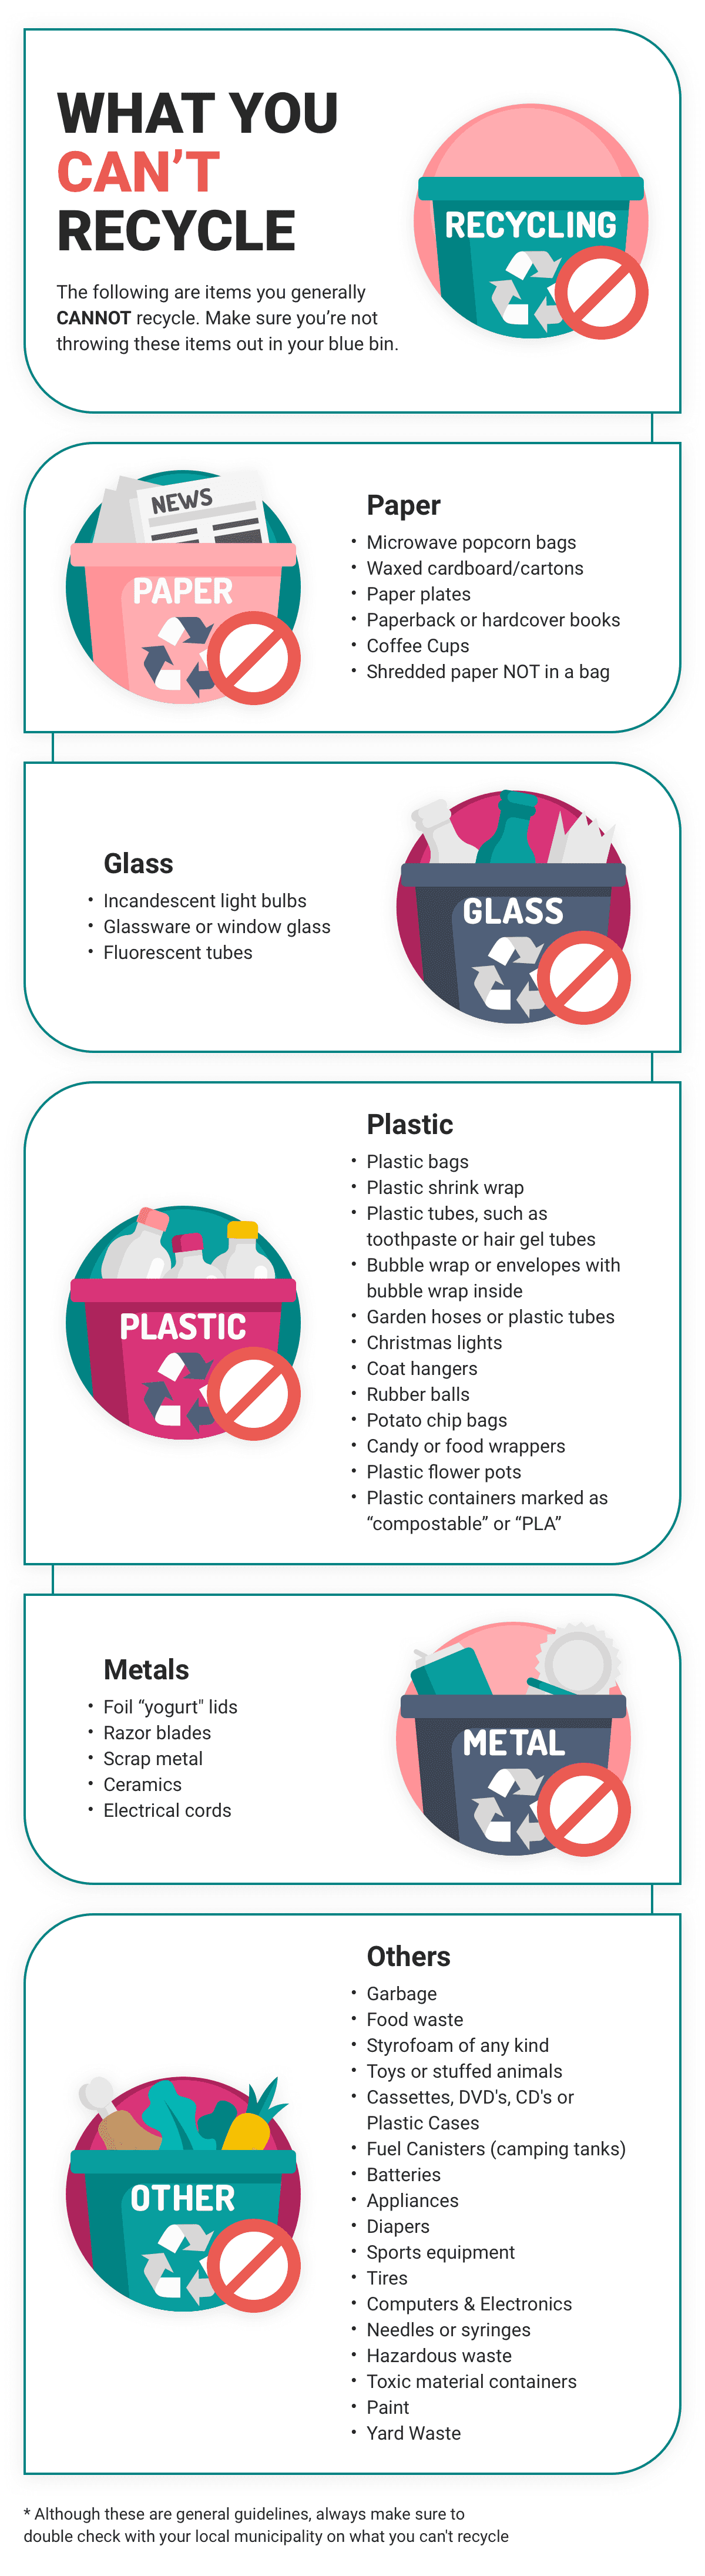 infographic on what you generally can't recycle. categorized by non-recyclable paper, glass, plastic, metal, and other items. For example, some items you can't recycle are coffee cups, light bulbs, plastic bags, razor blades, styrofoam, and batteries.